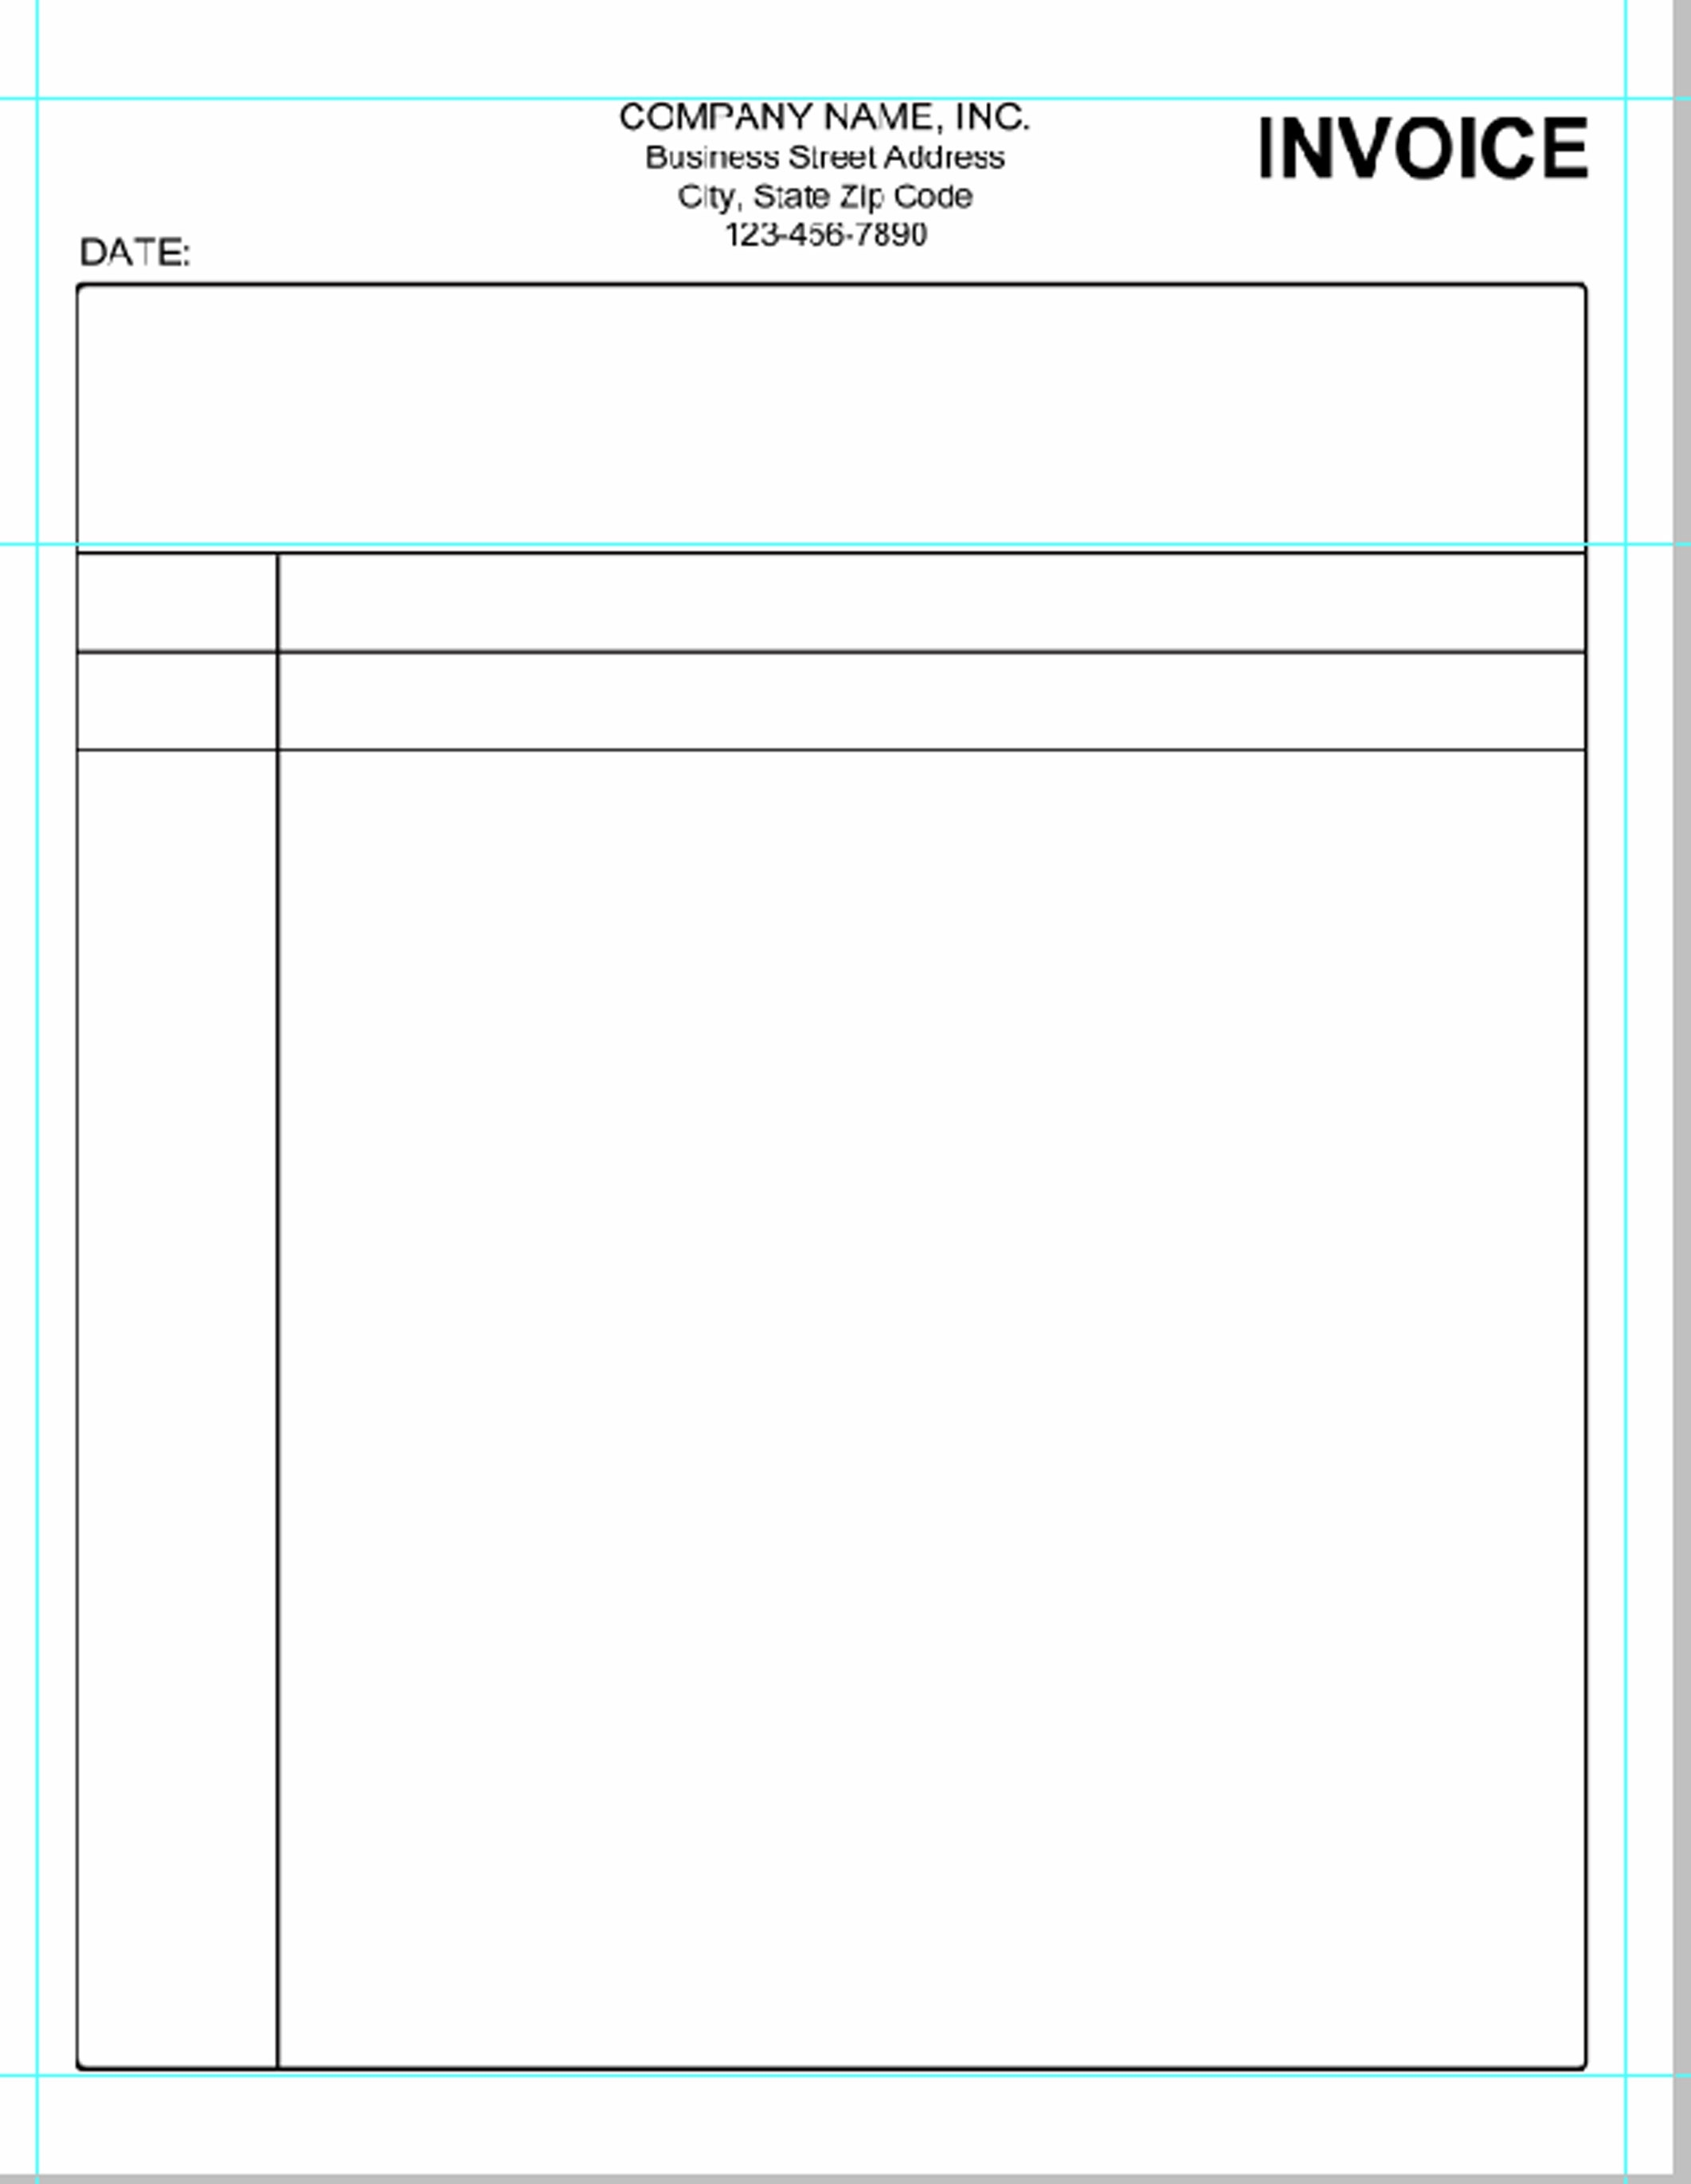 ... Blank Invoice Sample Free Blank Invoice Template Invoice Template Free  2016 2123 X 2742 ...  Blank Invoice Form Free